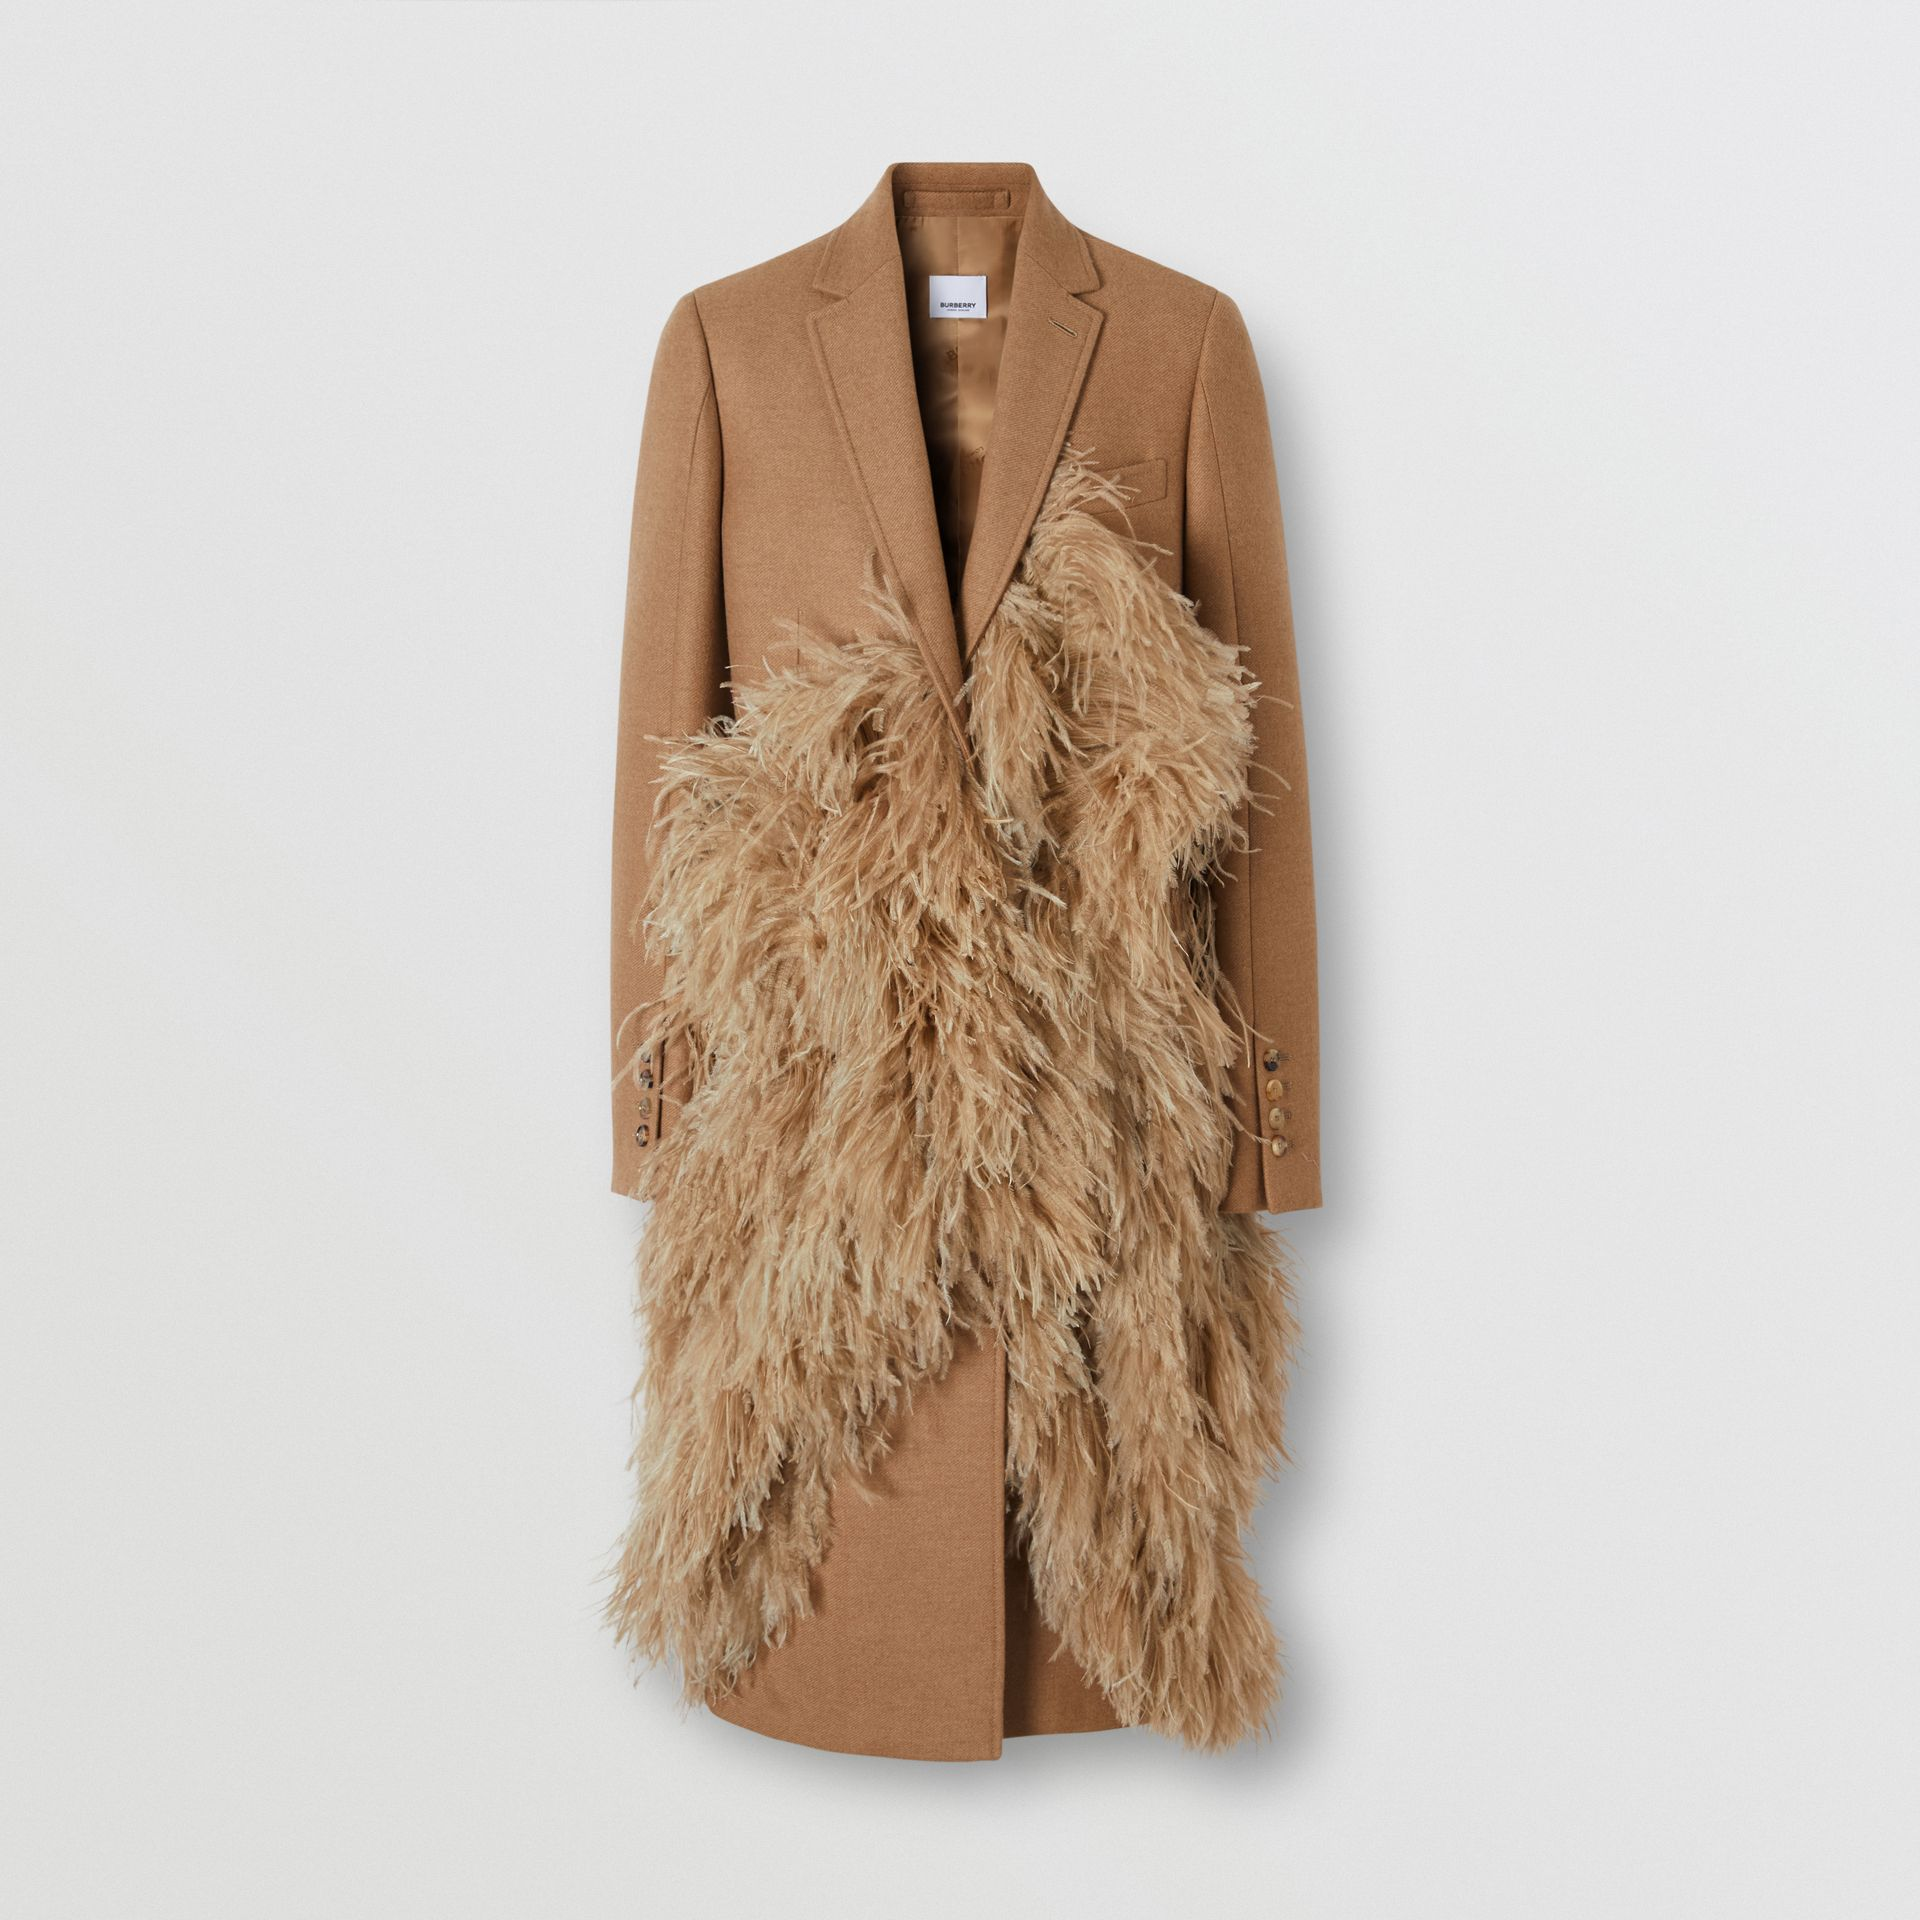 Feather Detail Camel Hair Tailored Coat - Women | Burberry - gallery image 3